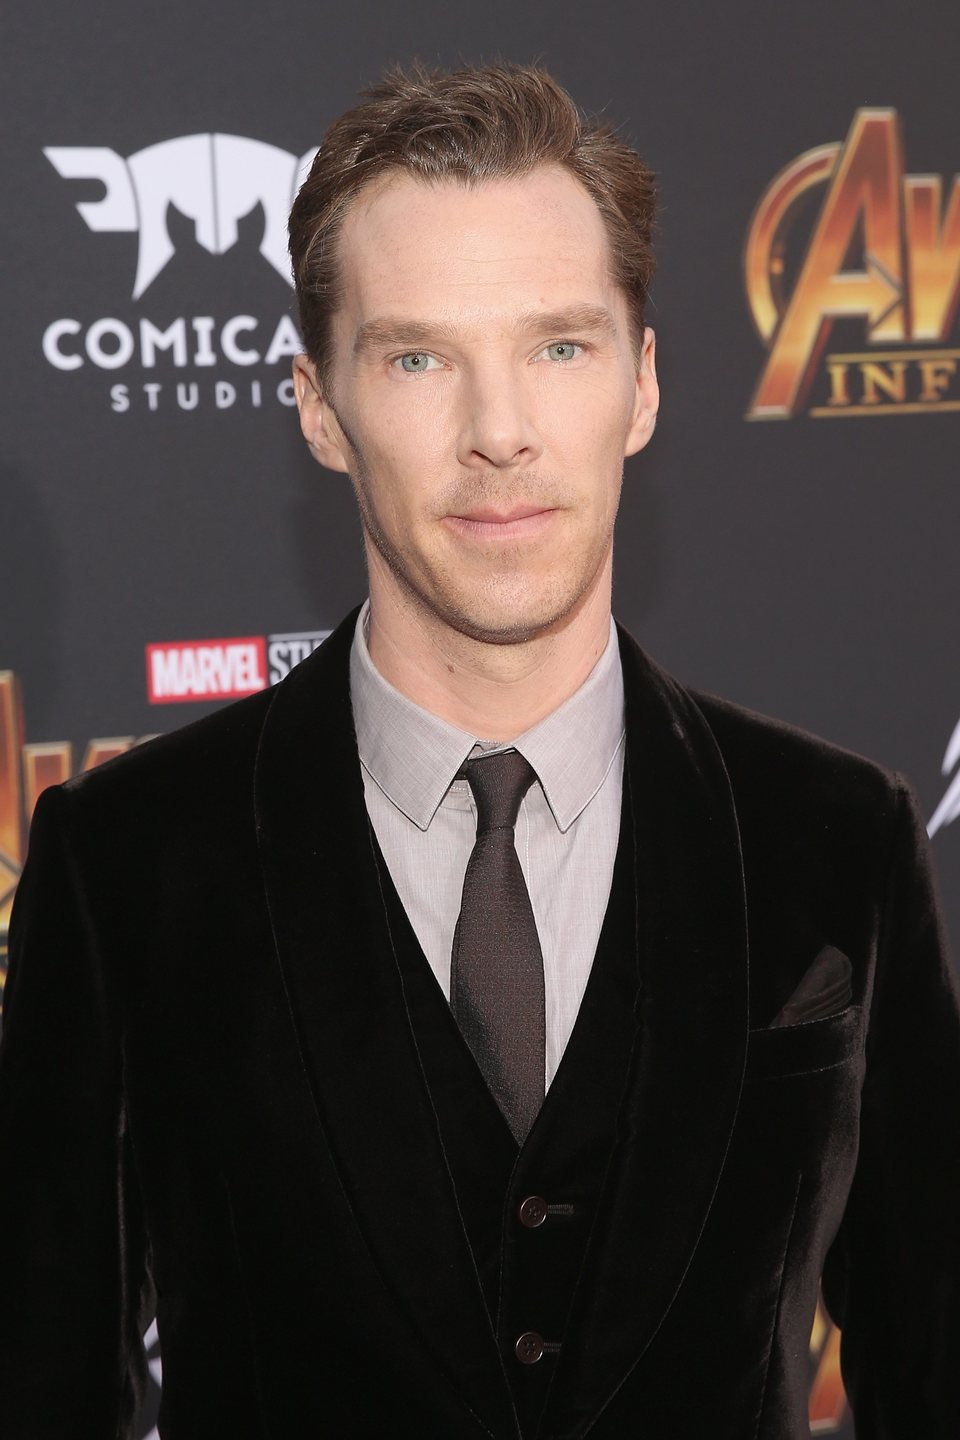 Benedict Cumberbatch poses on the purple carpet at the world premiere of 'Avengers: Infinity War'